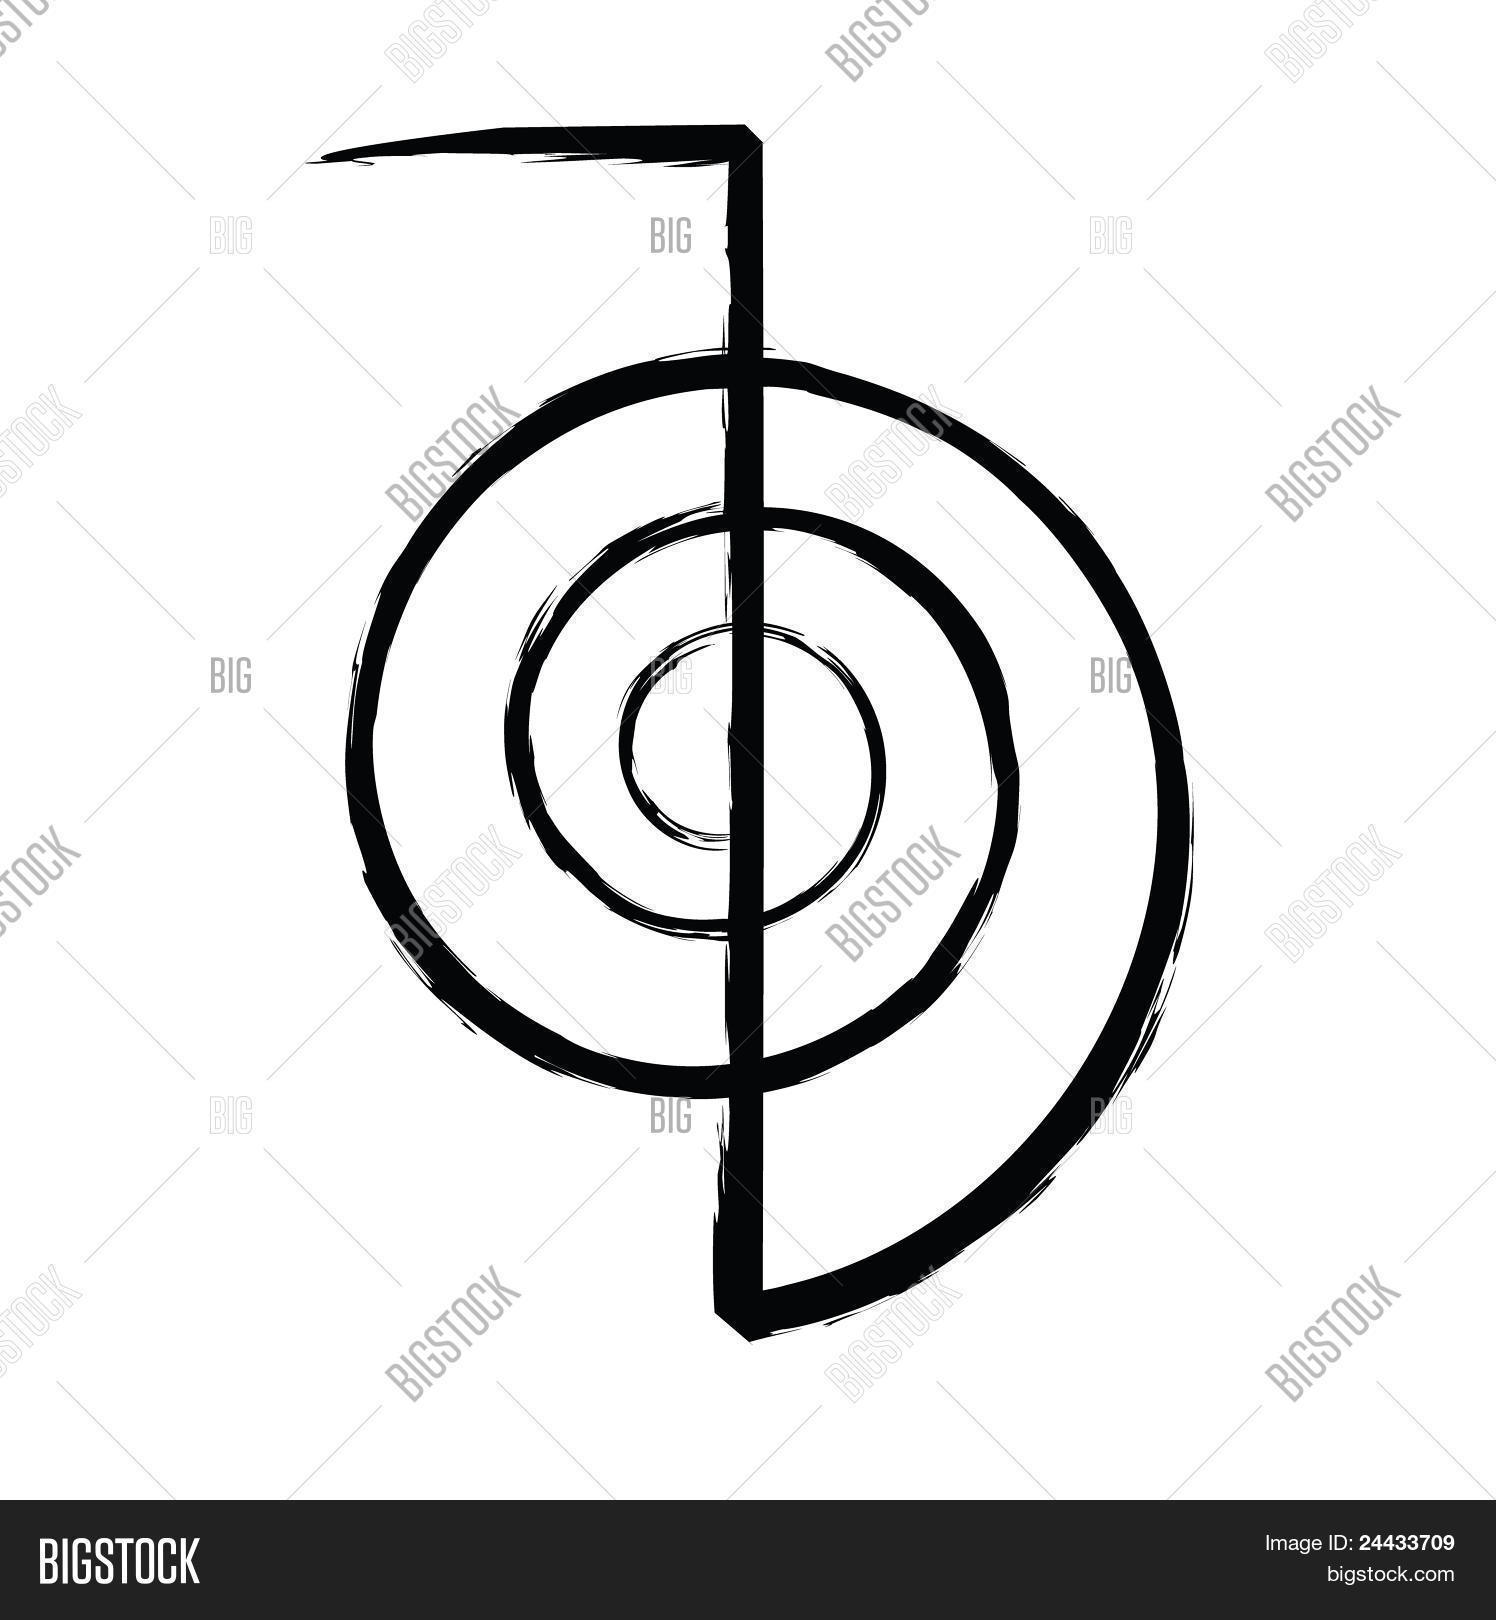 Usui images illustrations vectors usui stock photos images reiki power symbol cho ku rei reiki japanese symbol for reiki biocorpaavc